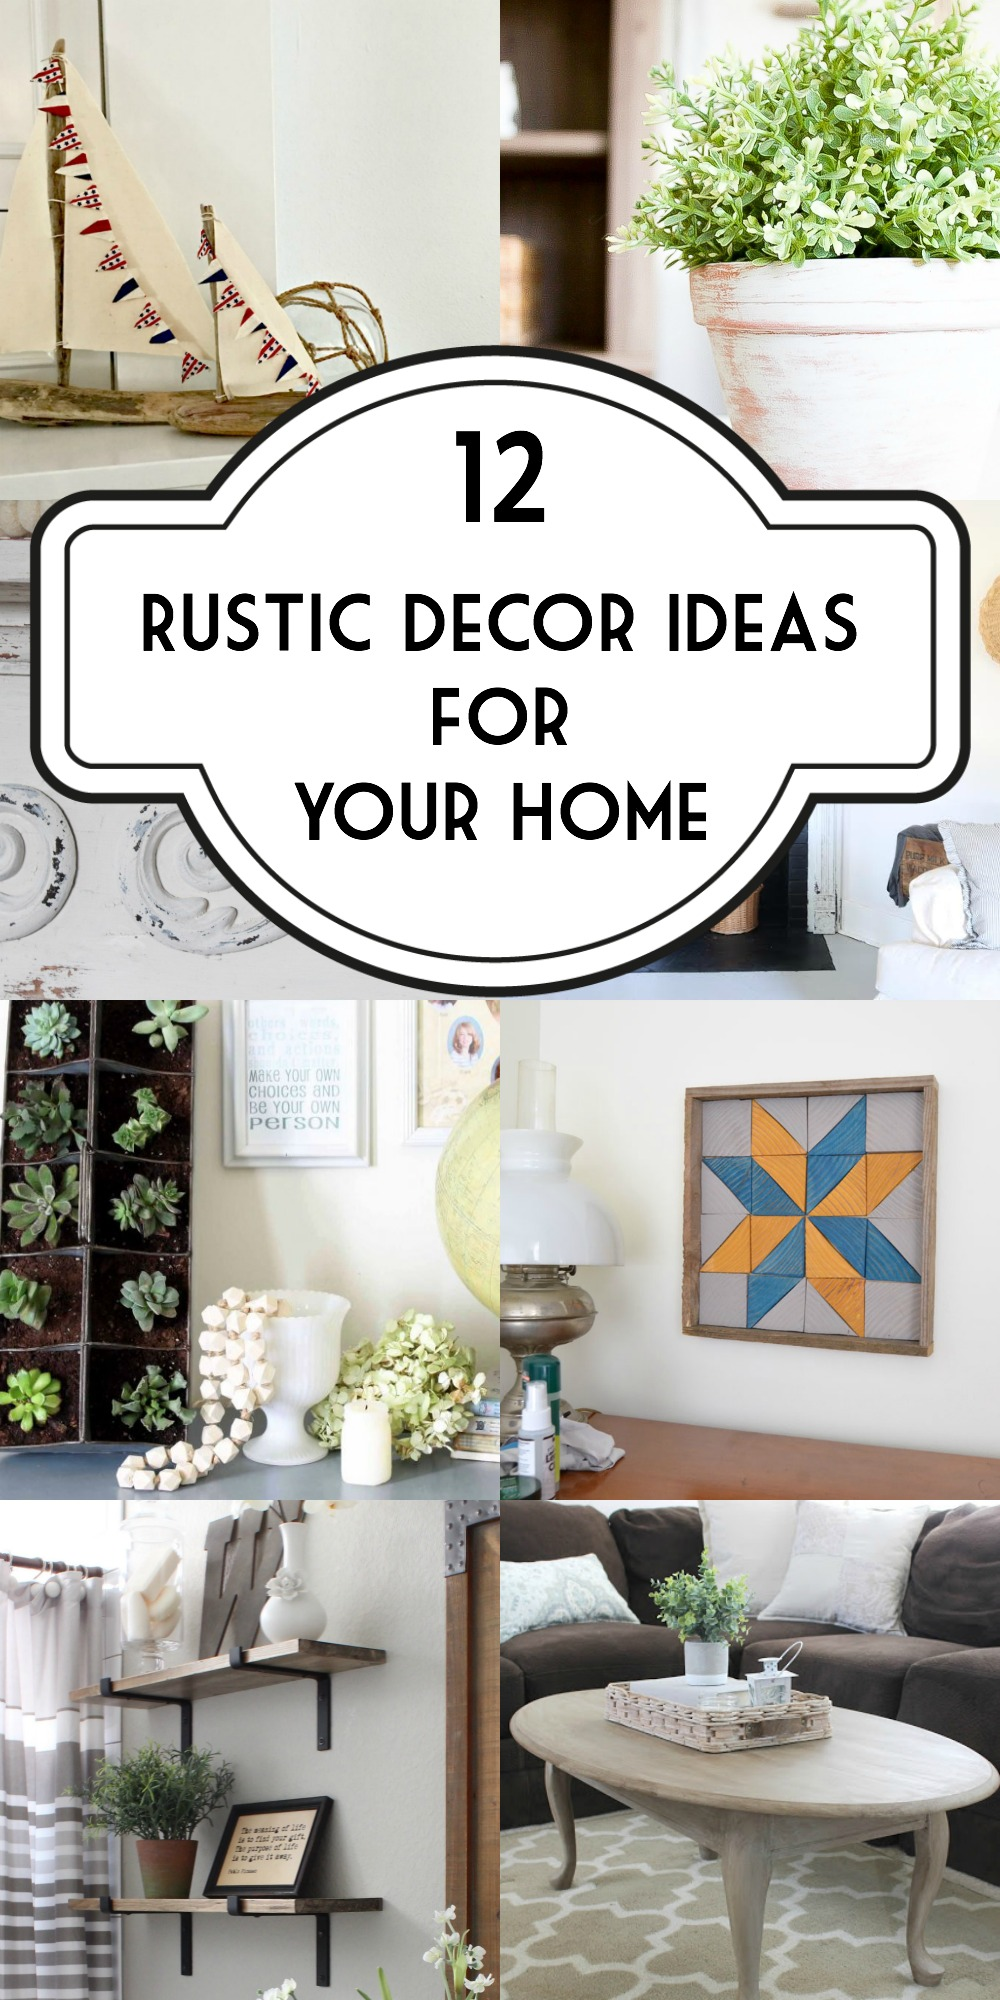 rustic home decor ideas pinterest 12 rustic decor ideas for your home the how to home 13048